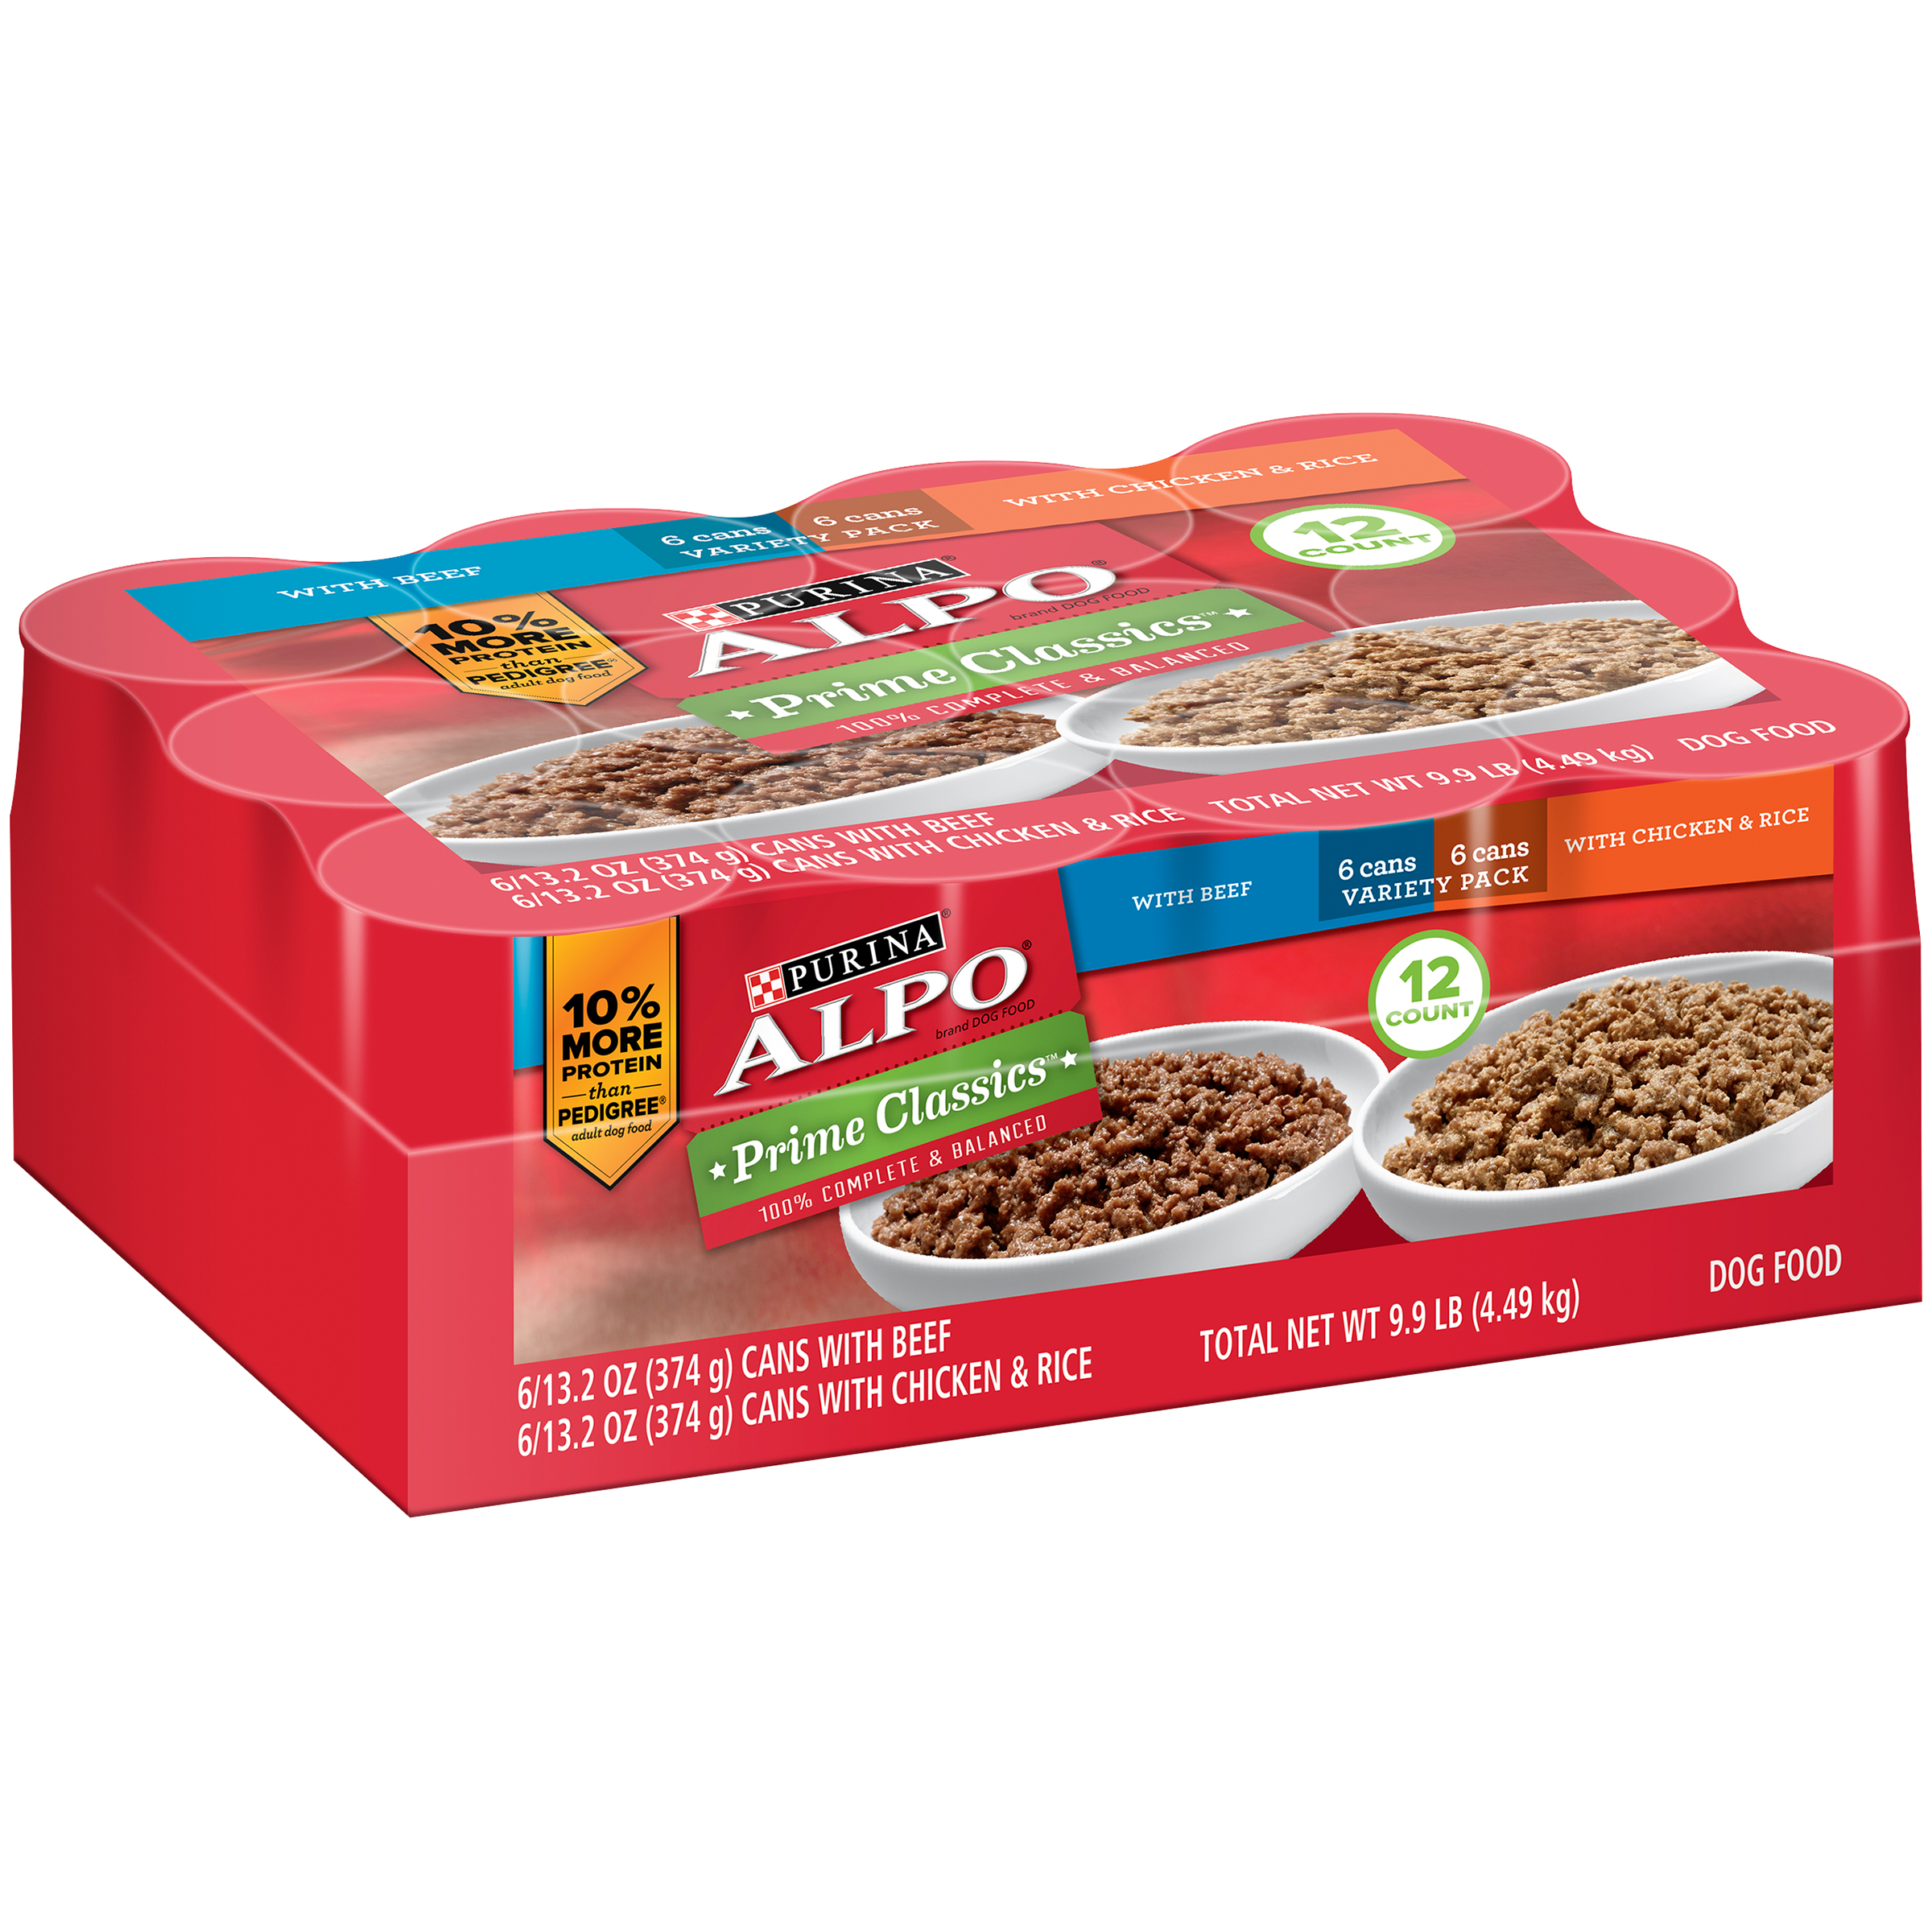 Purina Alpo Prime Classics Variety Pack Dog Food 12-13.2 oz. Cans